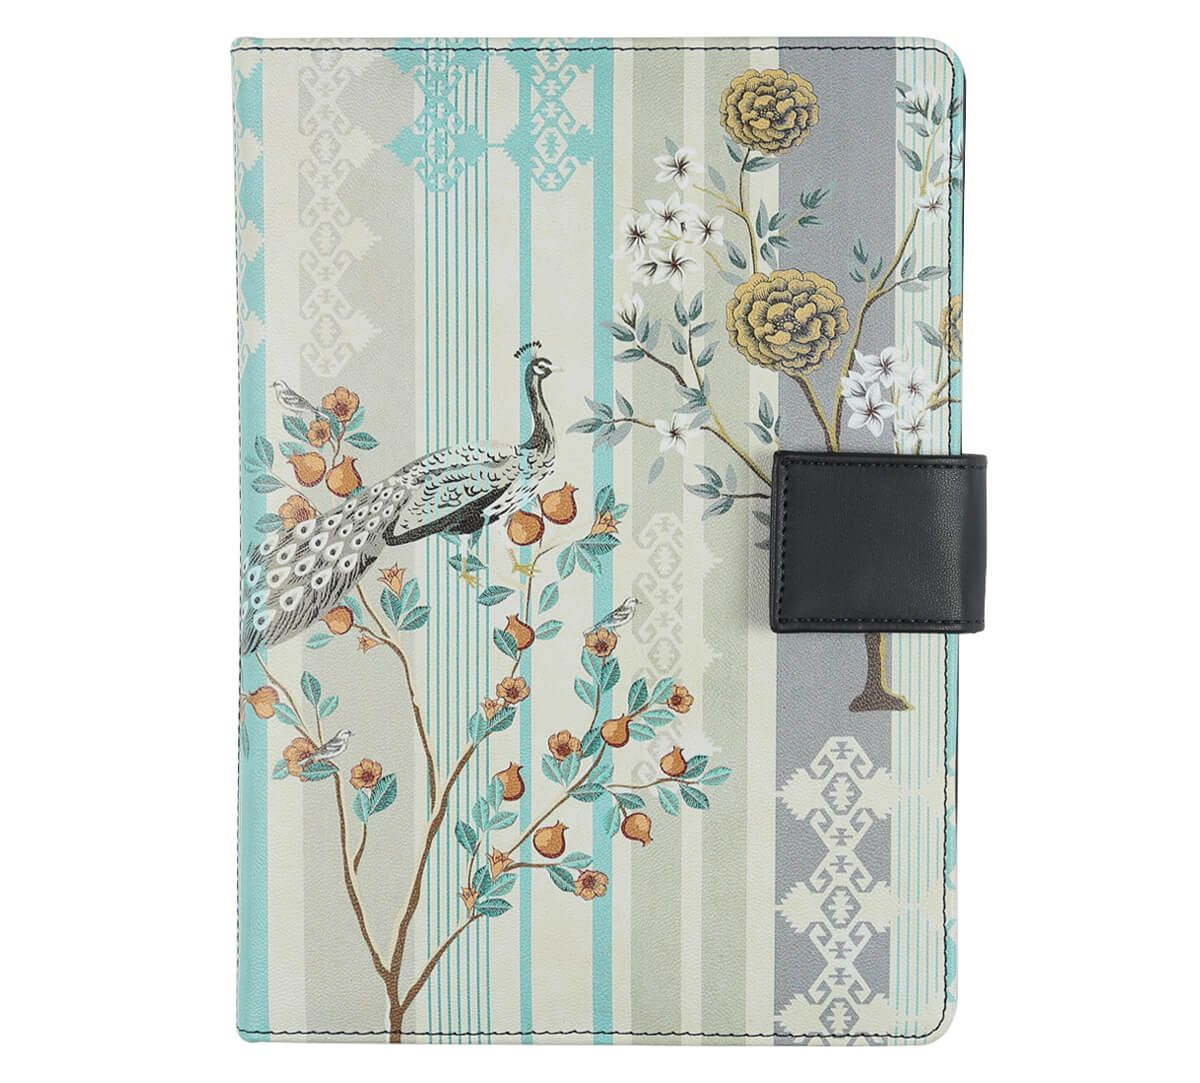 India Circus Peafowl Eclipse Notebook Planner